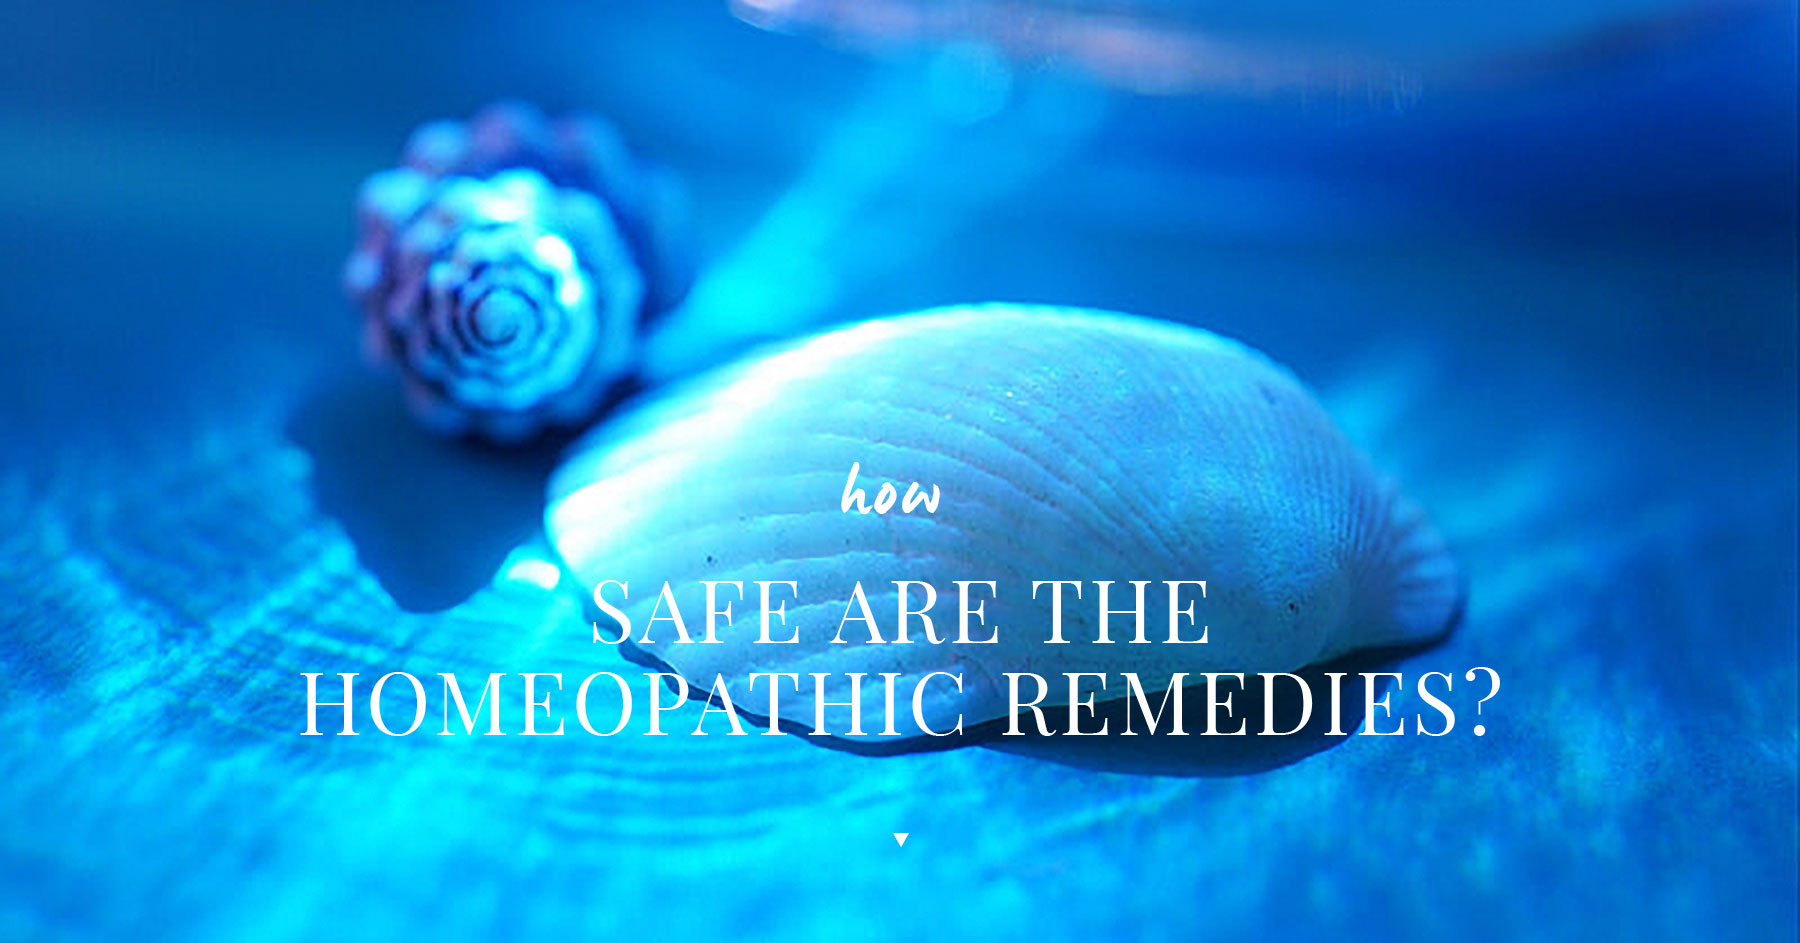 How Safe are the Homeopathic Remedies?